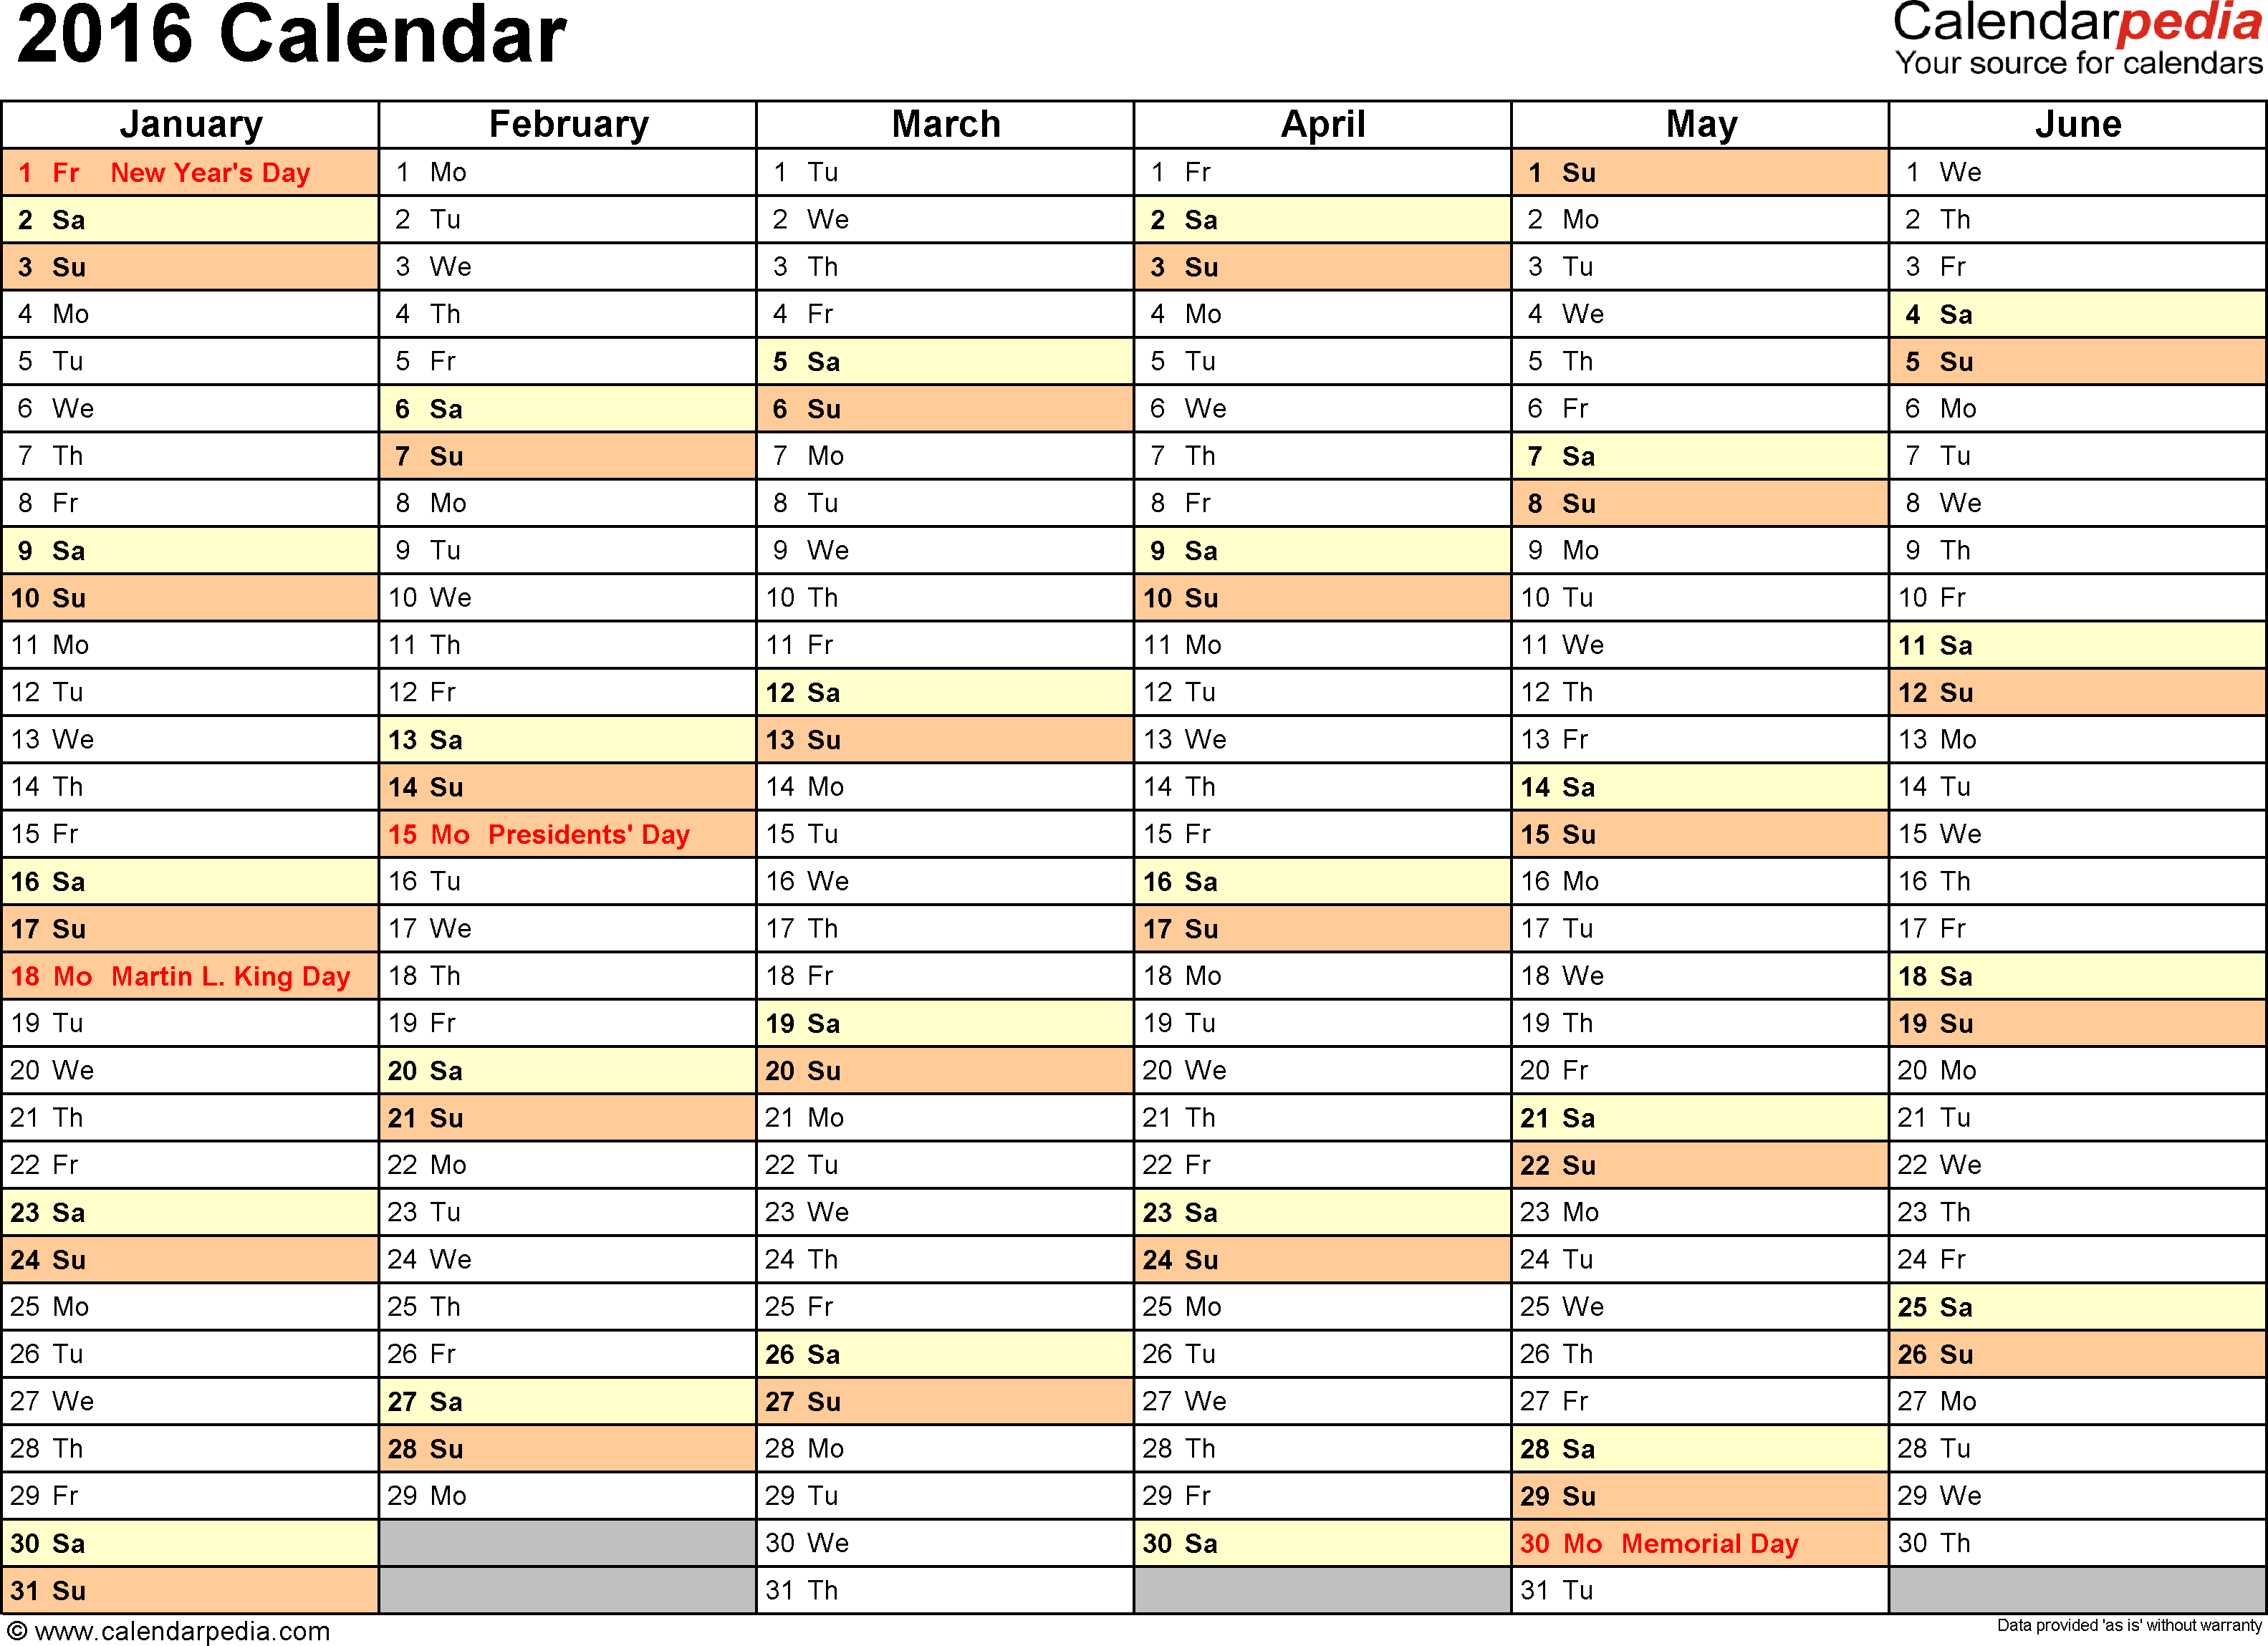 Ediblewildsus  Pleasing  Calendar  Download  Free Printable Excel Templates Xls With Lovely Template   Calendar For Excel Months Horizontally  Pages Landscape Orientation With Astounding How Do I Protect Cells In Excel Also Read Excel File In Python In Addition Excel Complex Formulas And Find Special Characters In Excel As Well As Project Monitoring Tools Excel Additionally What Is Auto Format In Excel From Calendarpediacom With Ediblewildsus  Lovely  Calendar  Download  Free Printable Excel Templates Xls With Astounding Template   Calendar For Excel Months Horizontally  Pages Landscape Orientation And Pleasing How Do I Protect Cells In Excel Also Read Excel File In Python In Addition Excel Complex Formulas From Calendarpediacom